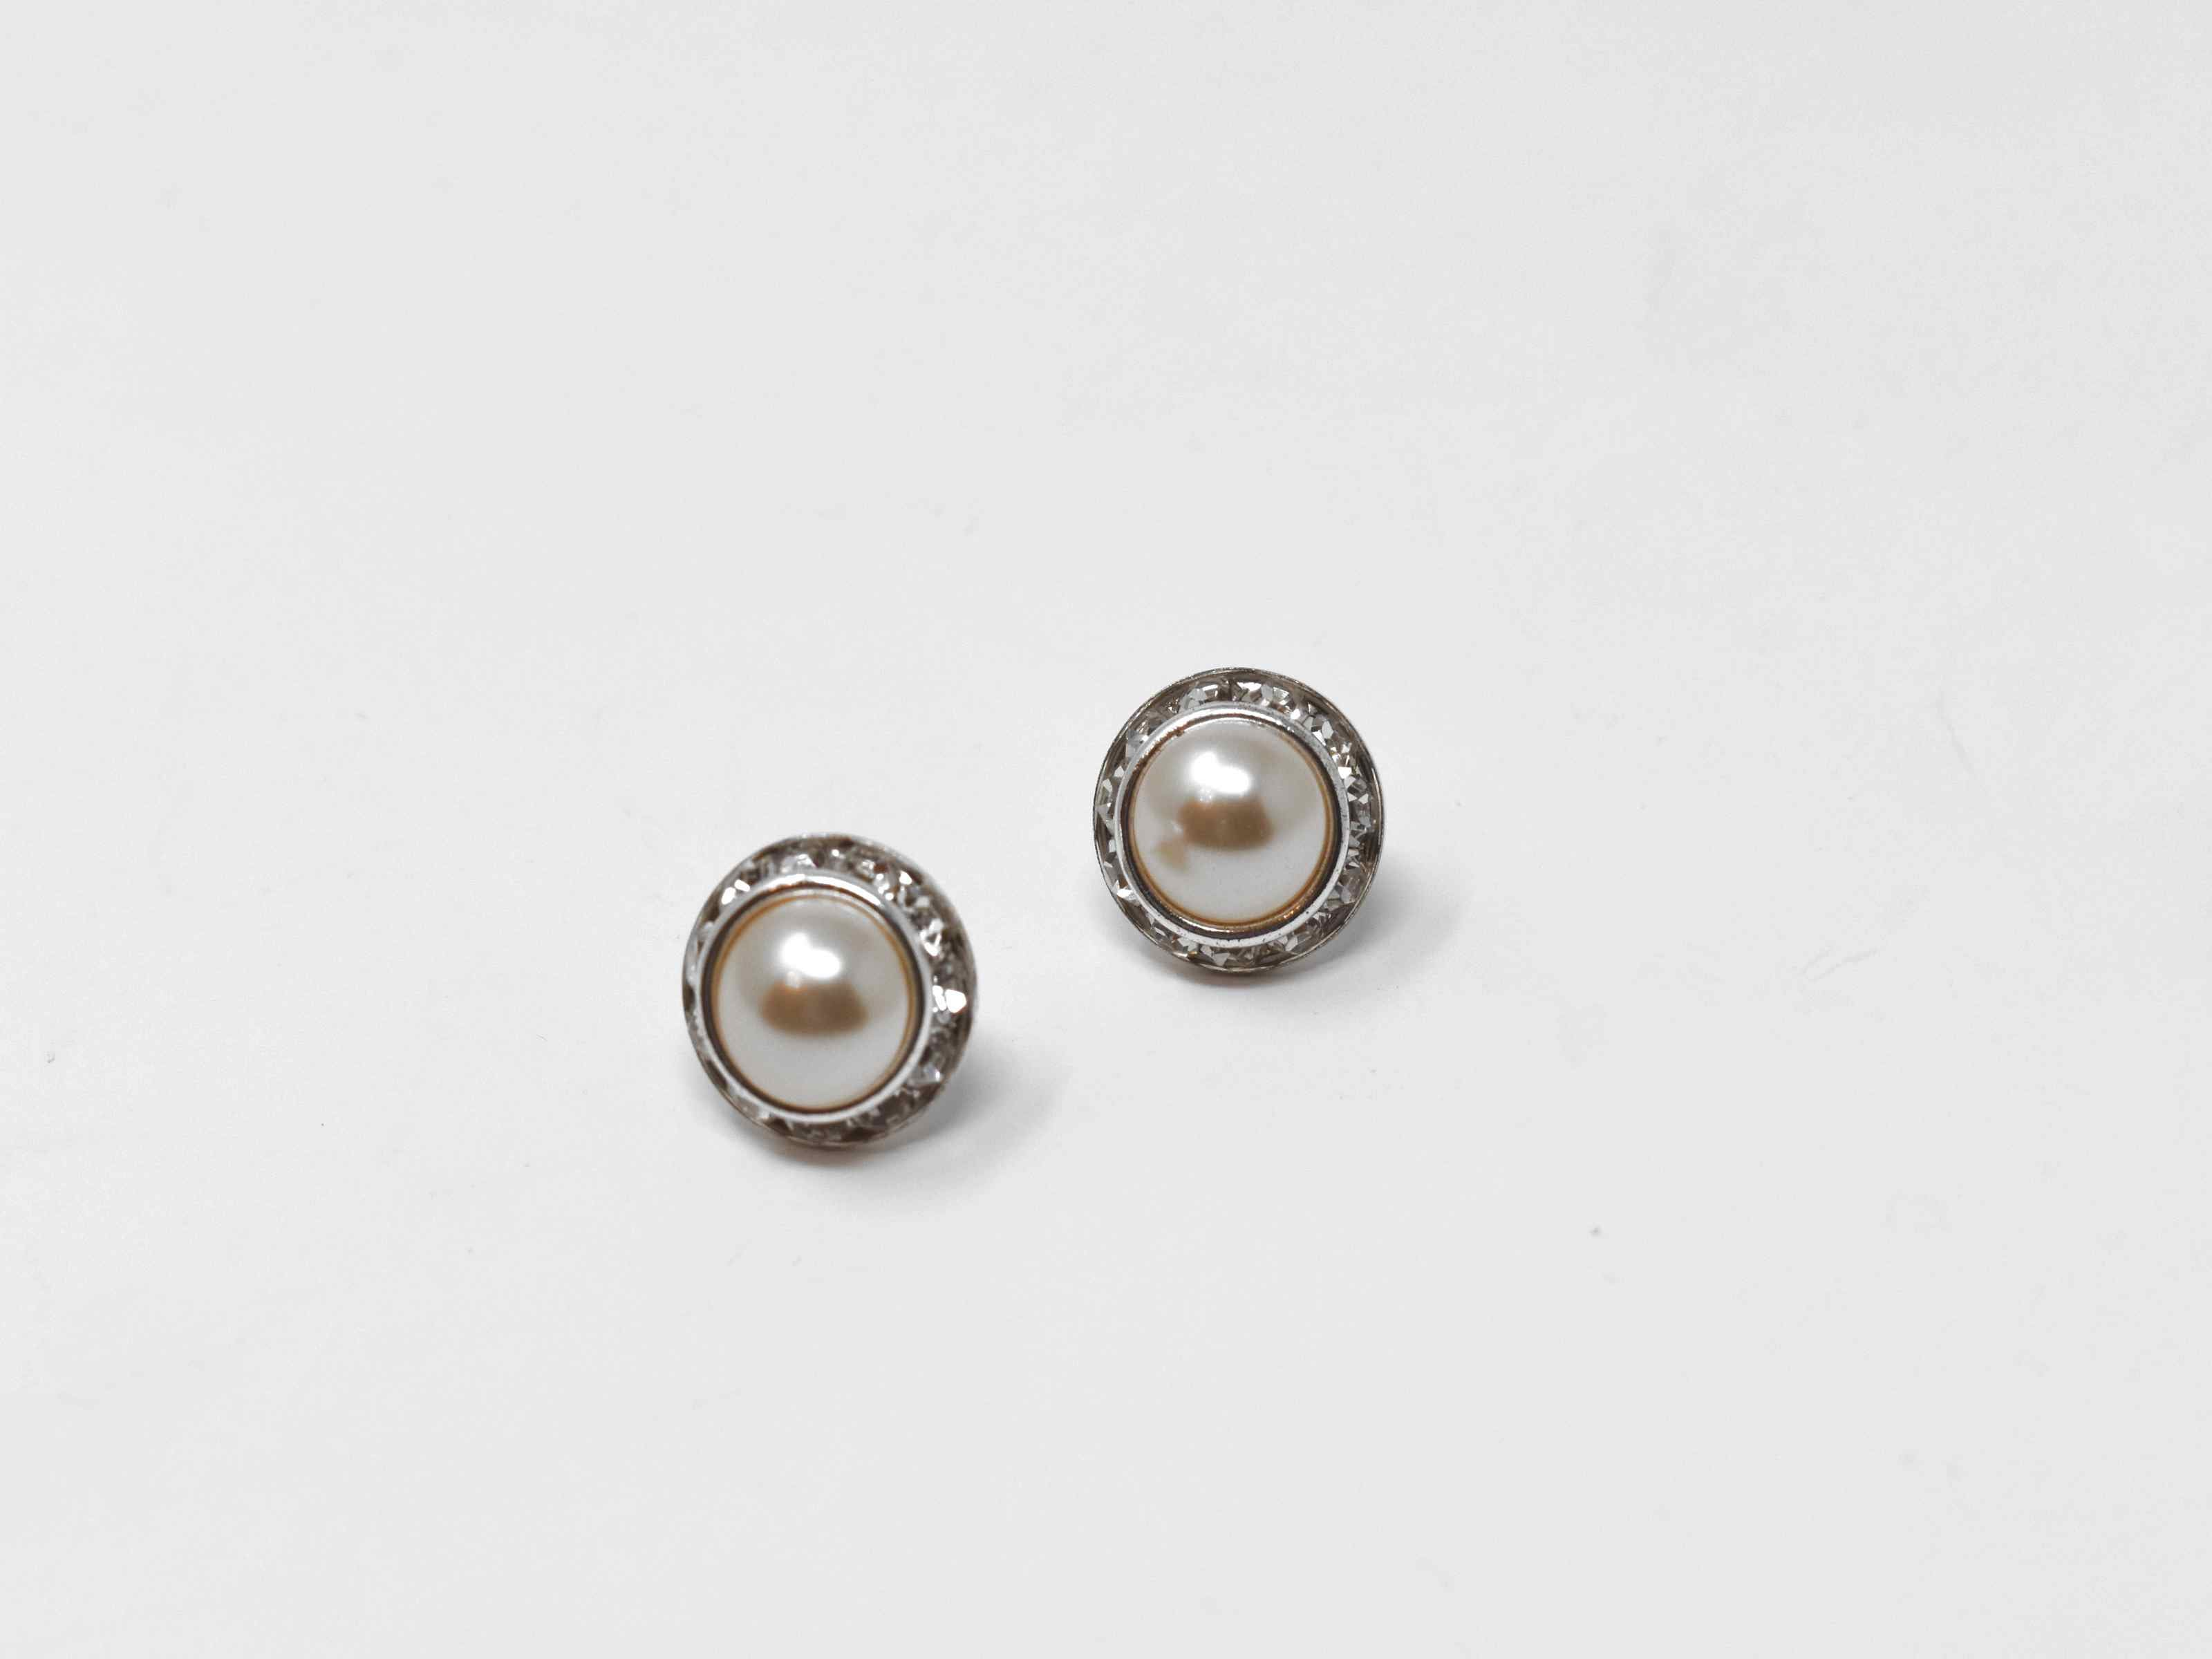 We would love for you to enjoy our delicate but chic calendula pearl knob earrings. These earrings have a champagne center pearl surrounded by a halo of stones. They are a 1/2 inch in length with a push back clasp.